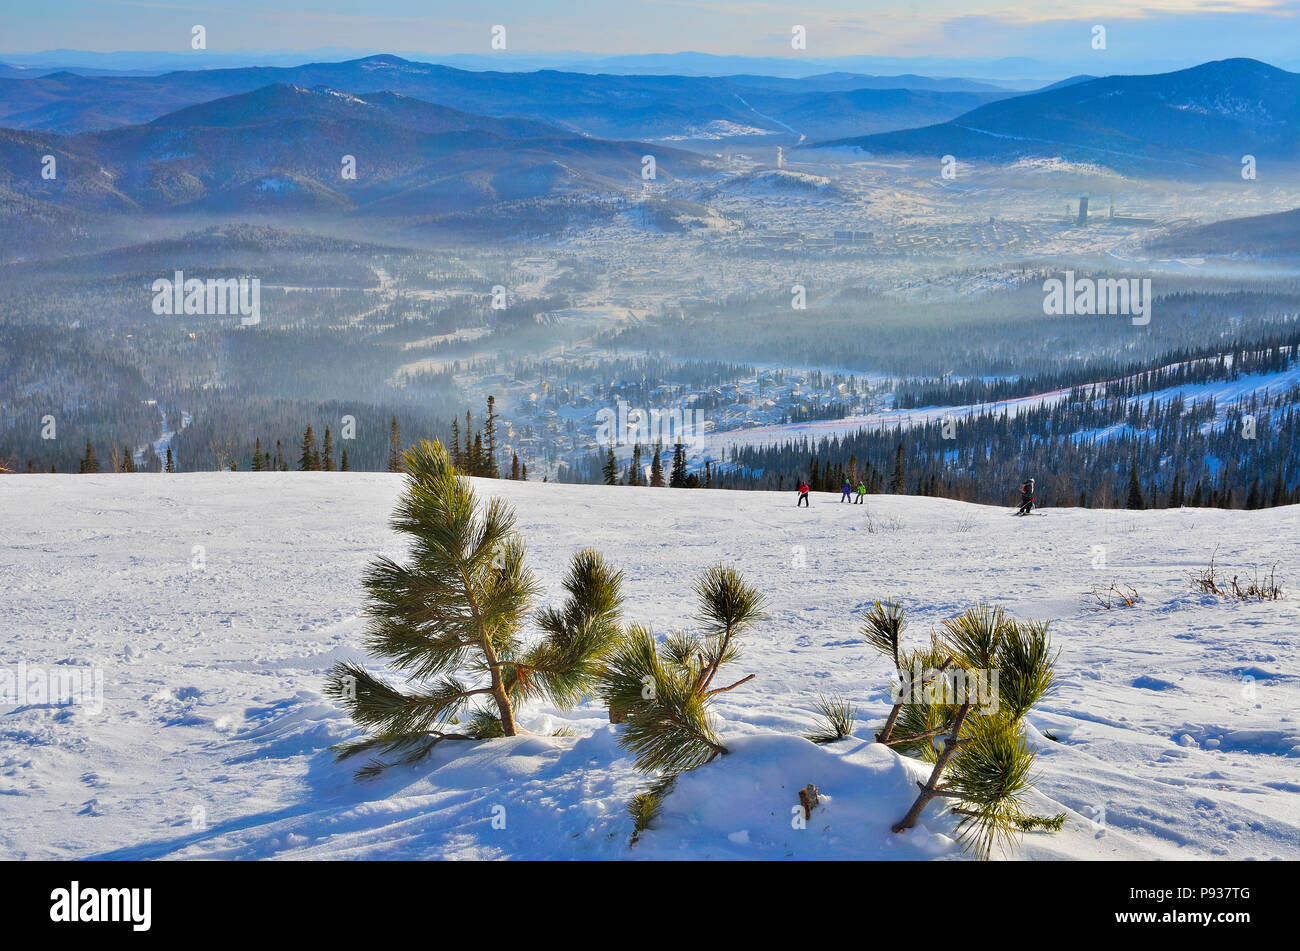 RUSSIA, SIBERIA, SHEREGESH - JANUARY 11, 2016: Sunny morning and ftosty mist over the ski resort Sheregesh - view from top of mountain with littlel pi - Stock Image